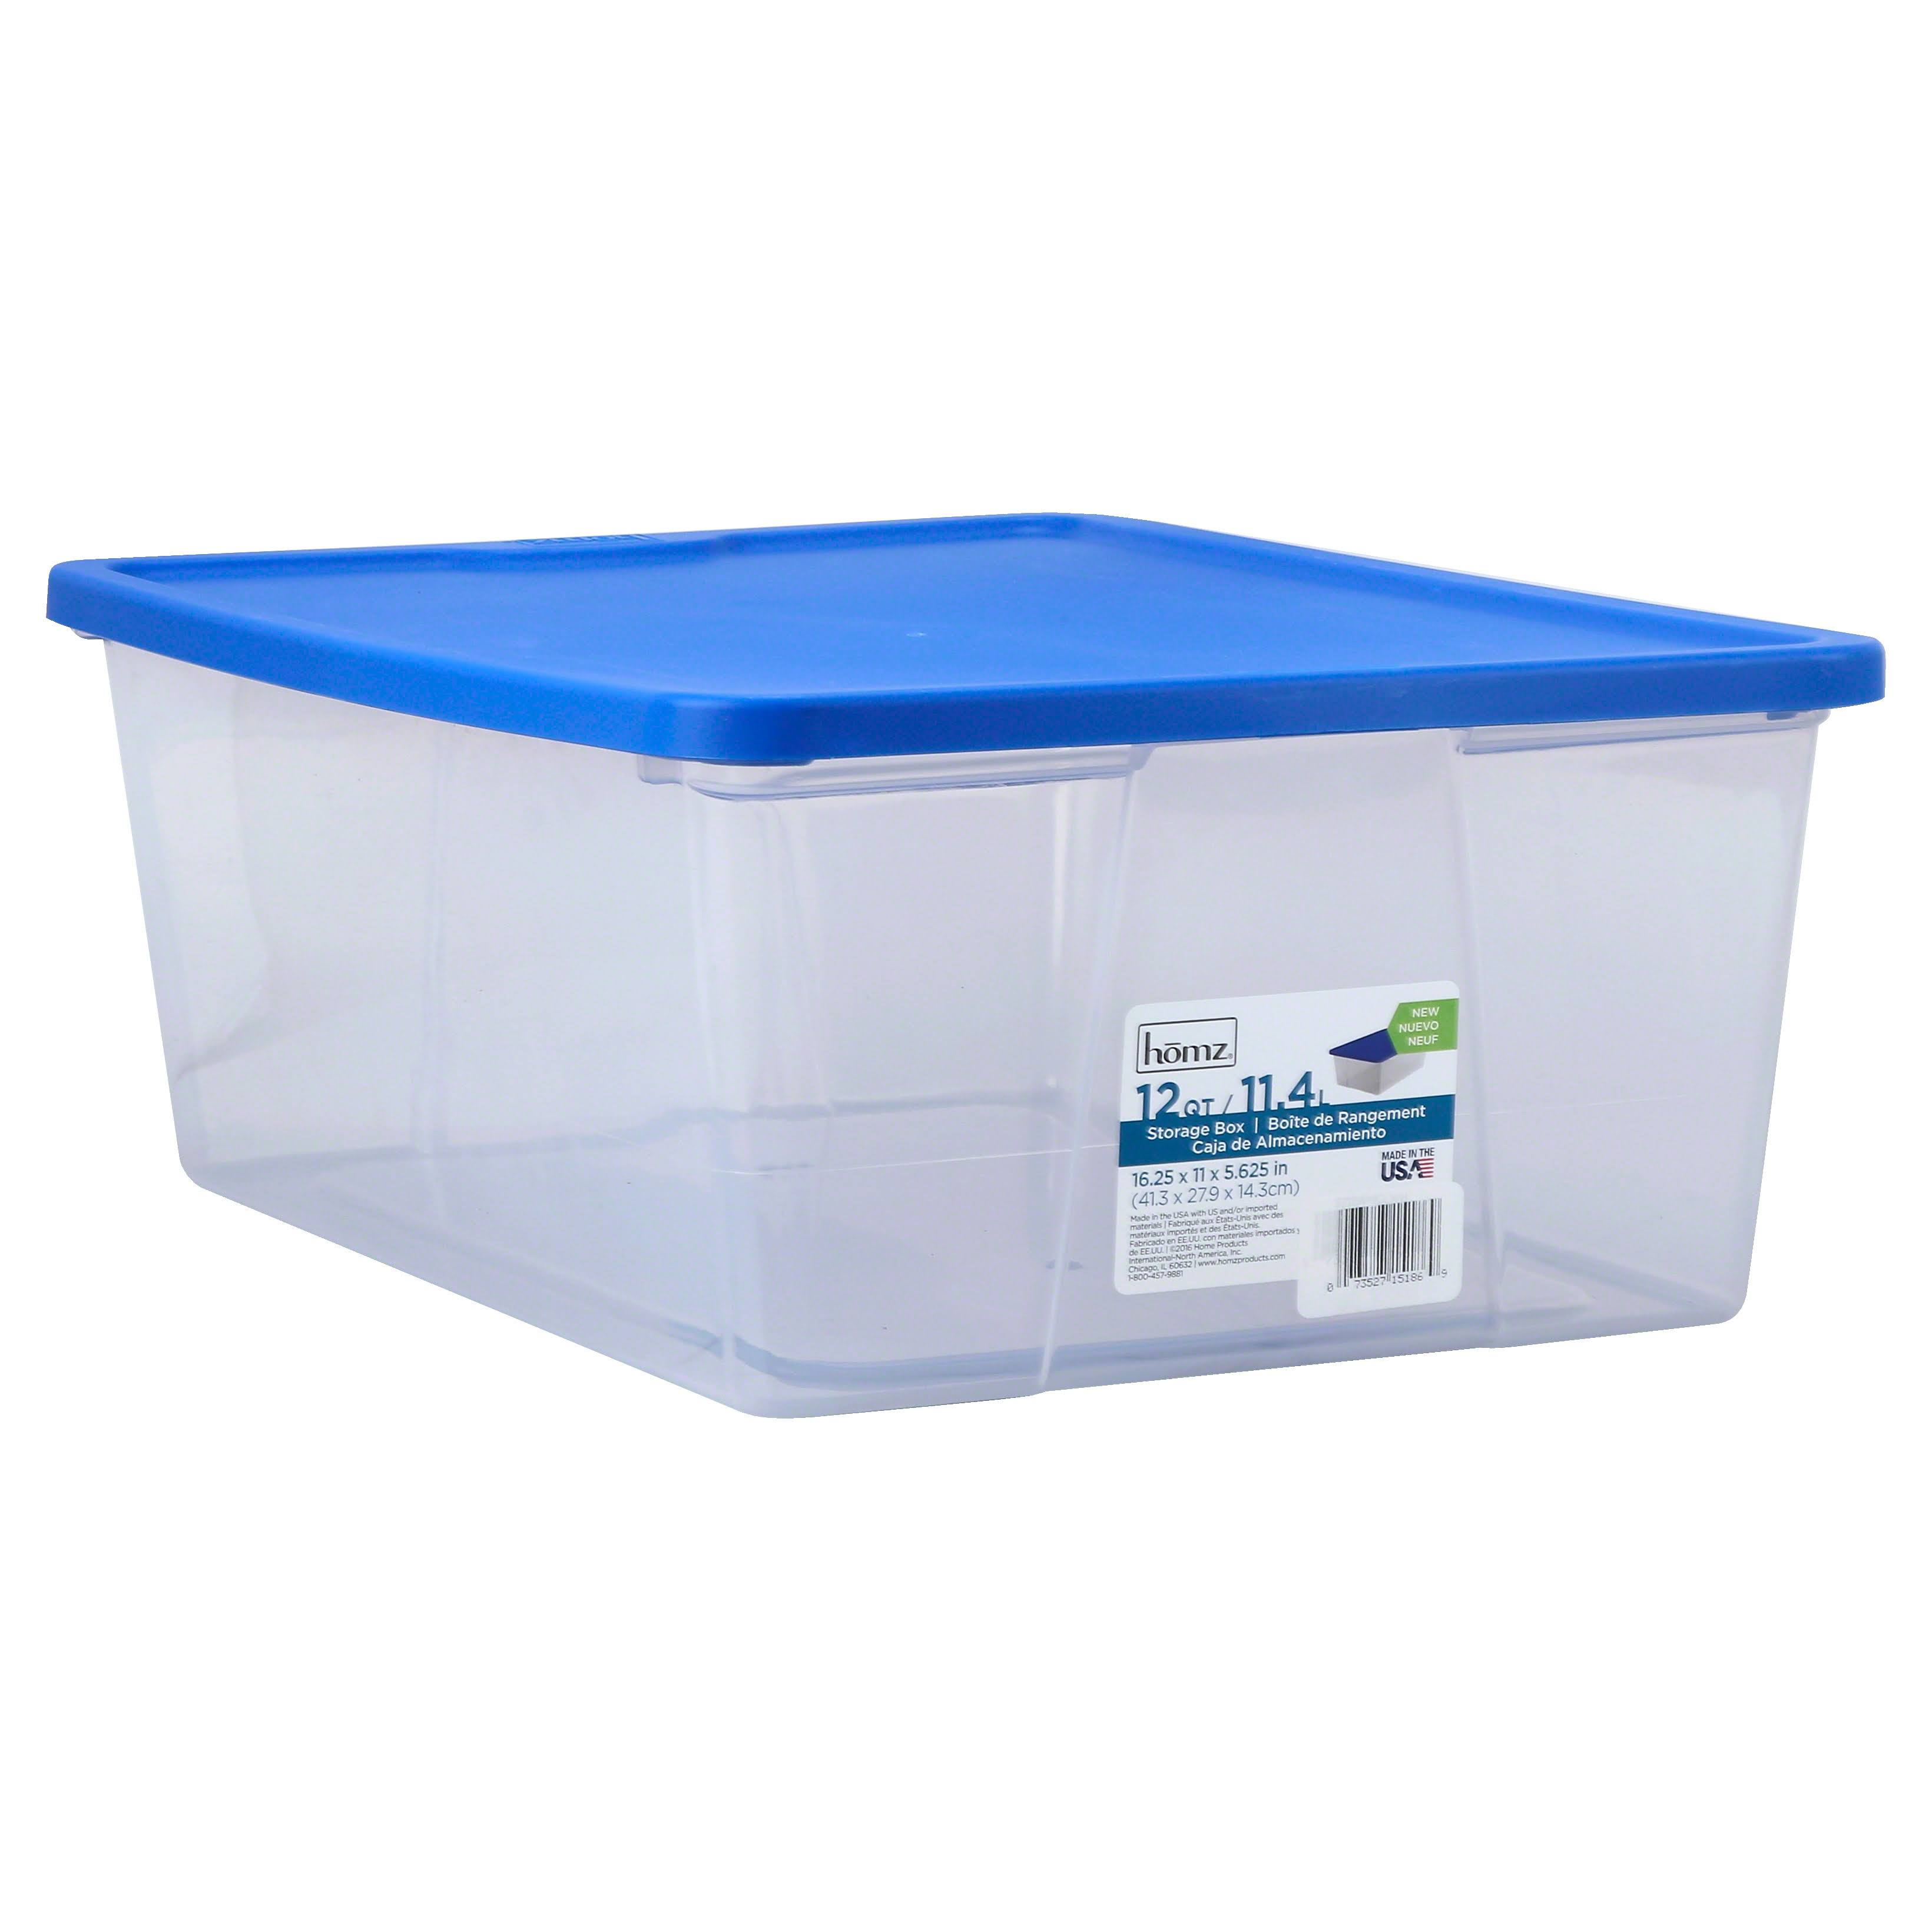 Homz Utility storage Tubs and Totes Plastic - Blue, Clear